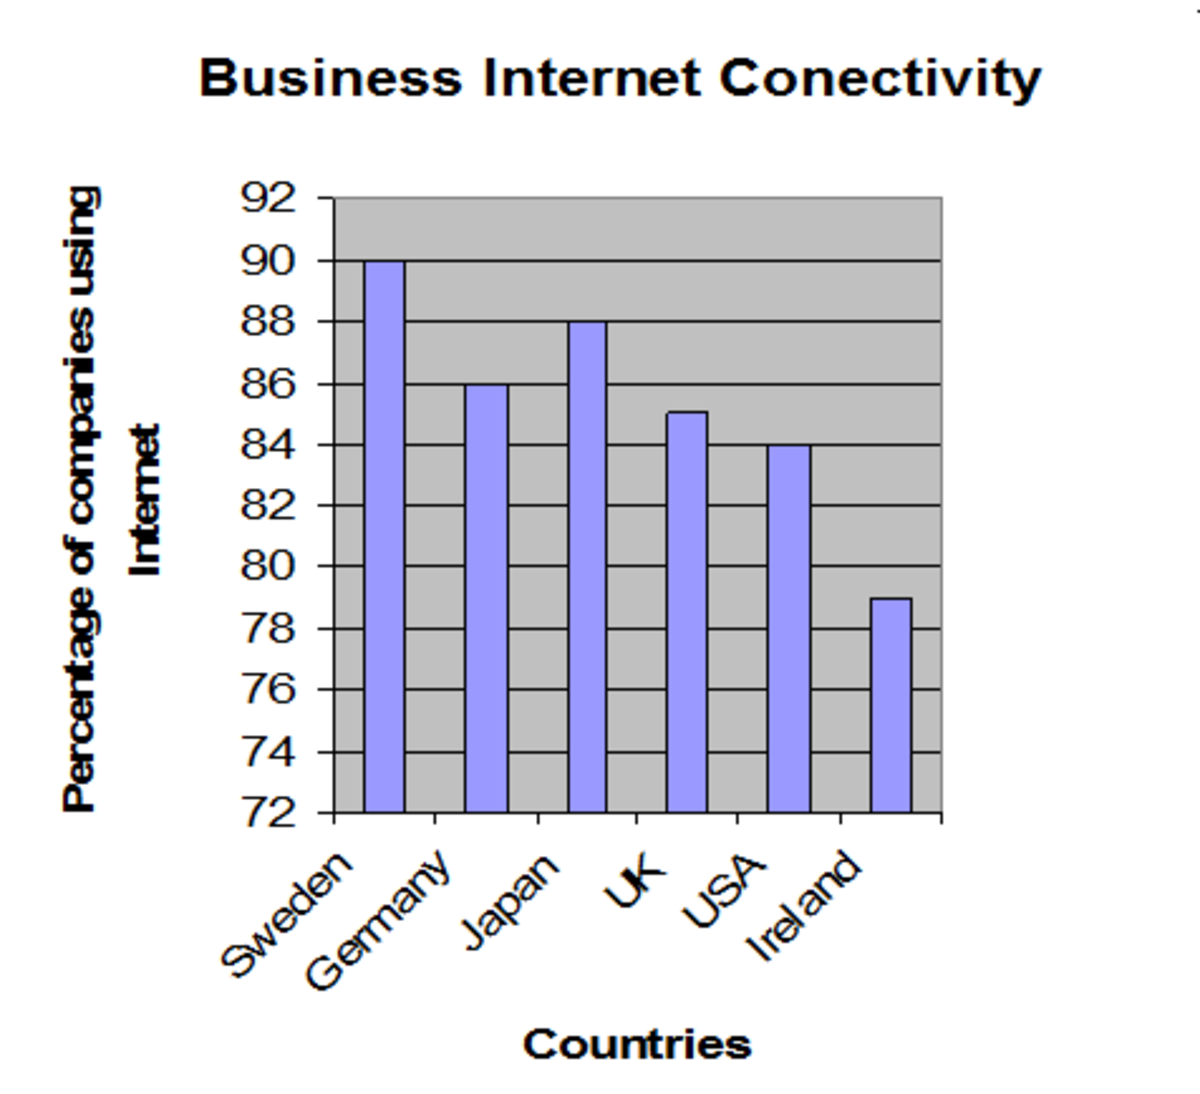 As revealed by the graph, the rates of companies using the Internet are amazingly high!